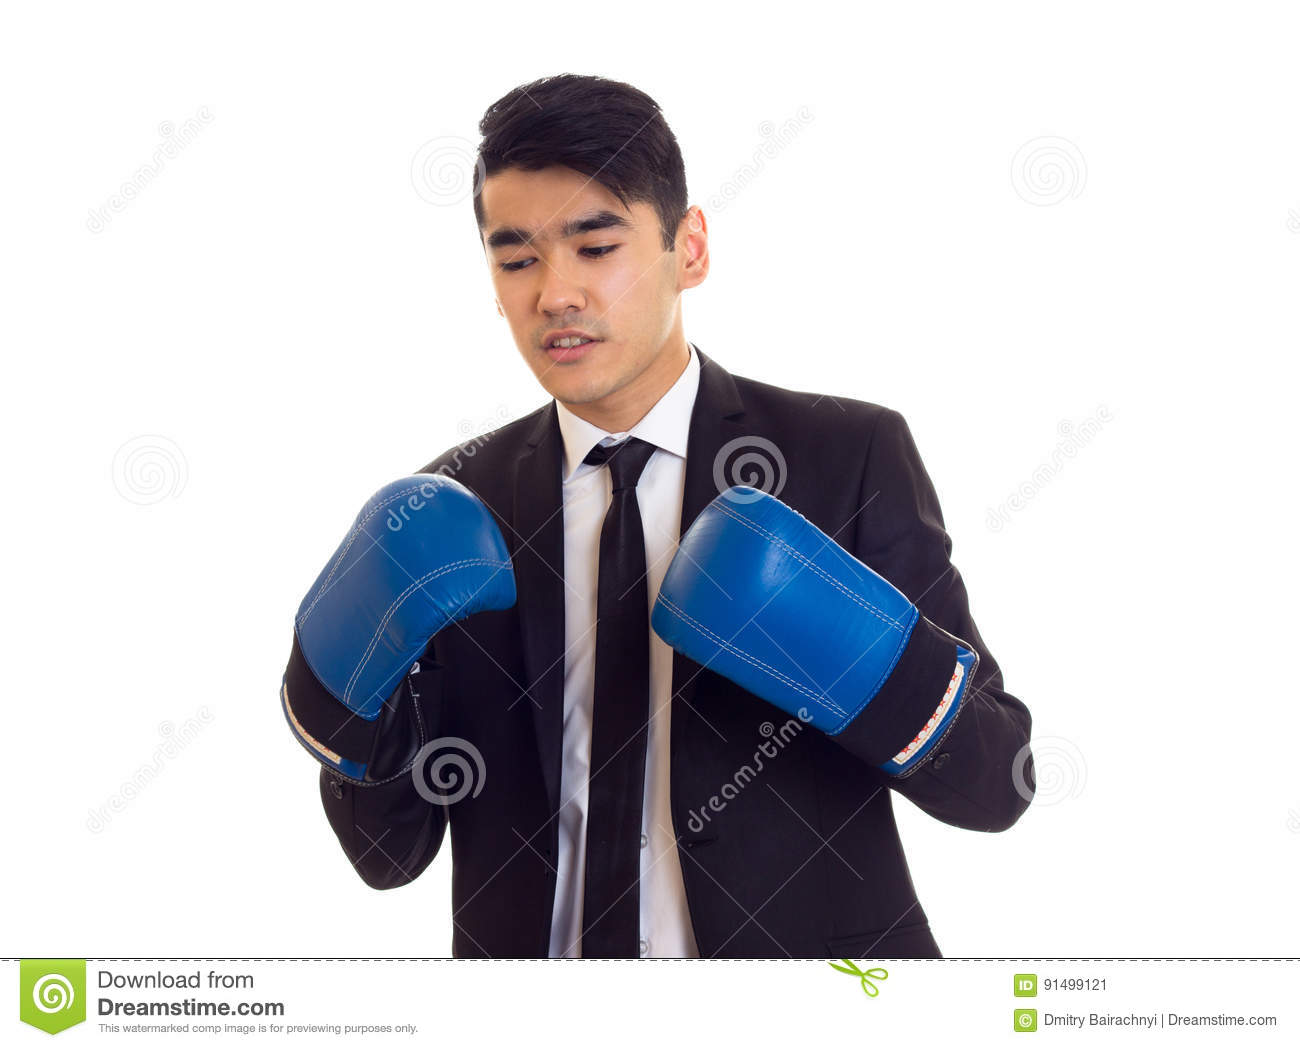 Pleasant young man with black hair in white shirt and black tuxedo with tie  and blue boxing gloves on white background 2056d8ba29